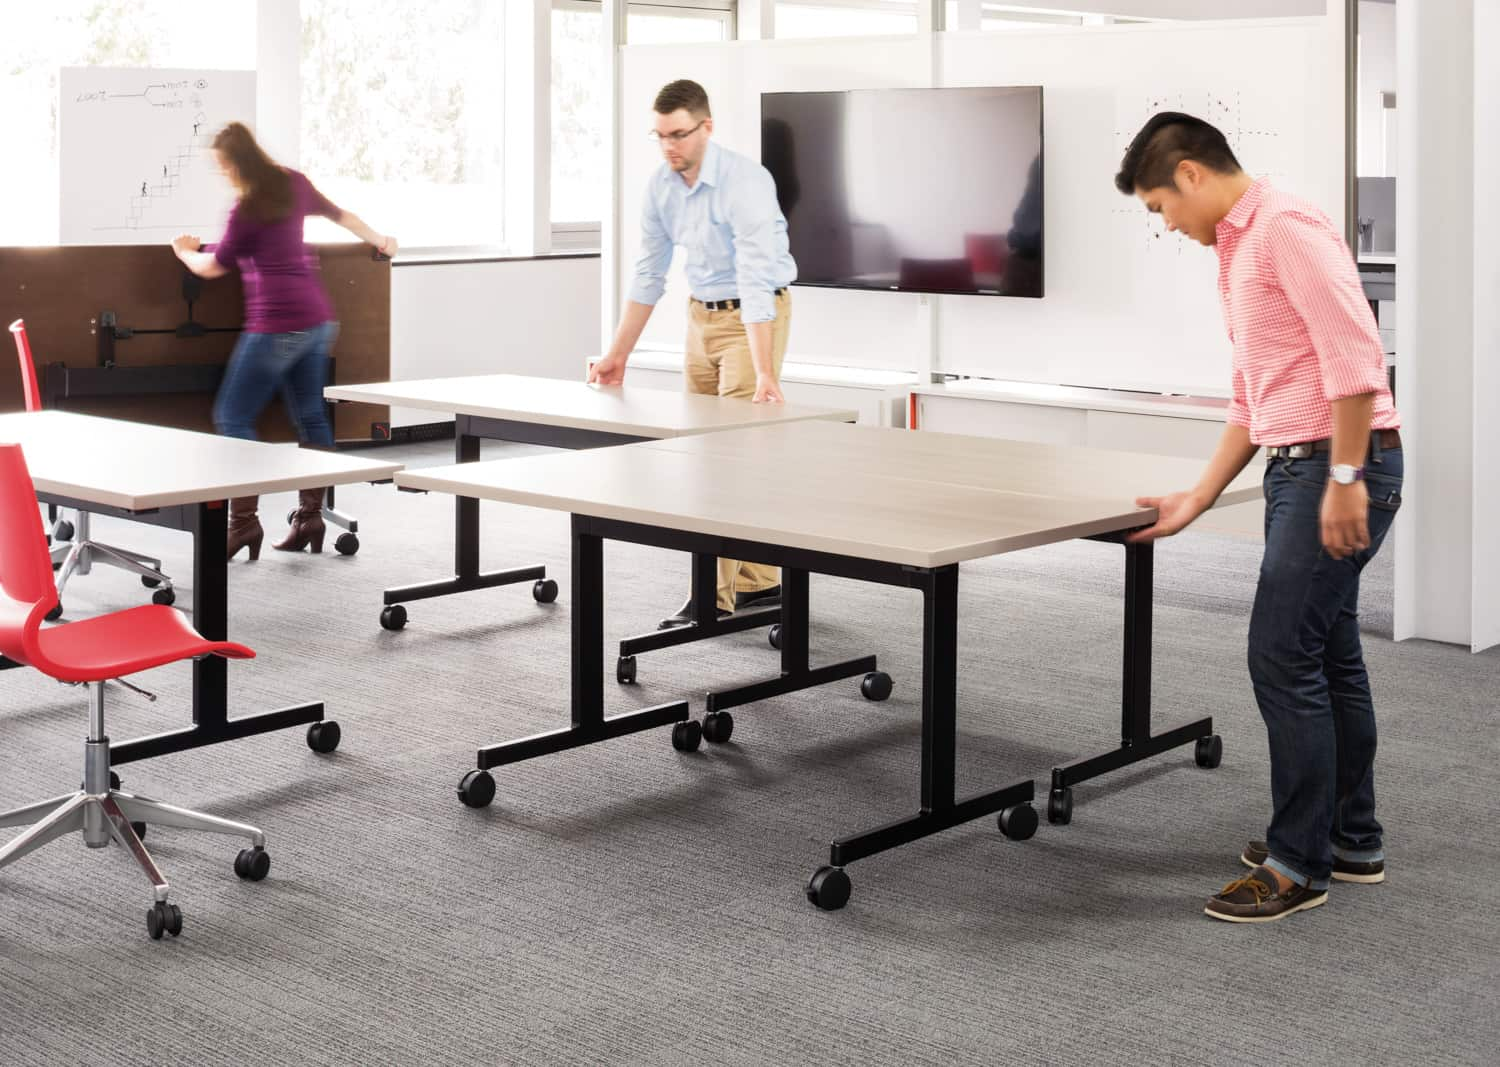 Questions About Collaborative Office Workspace?